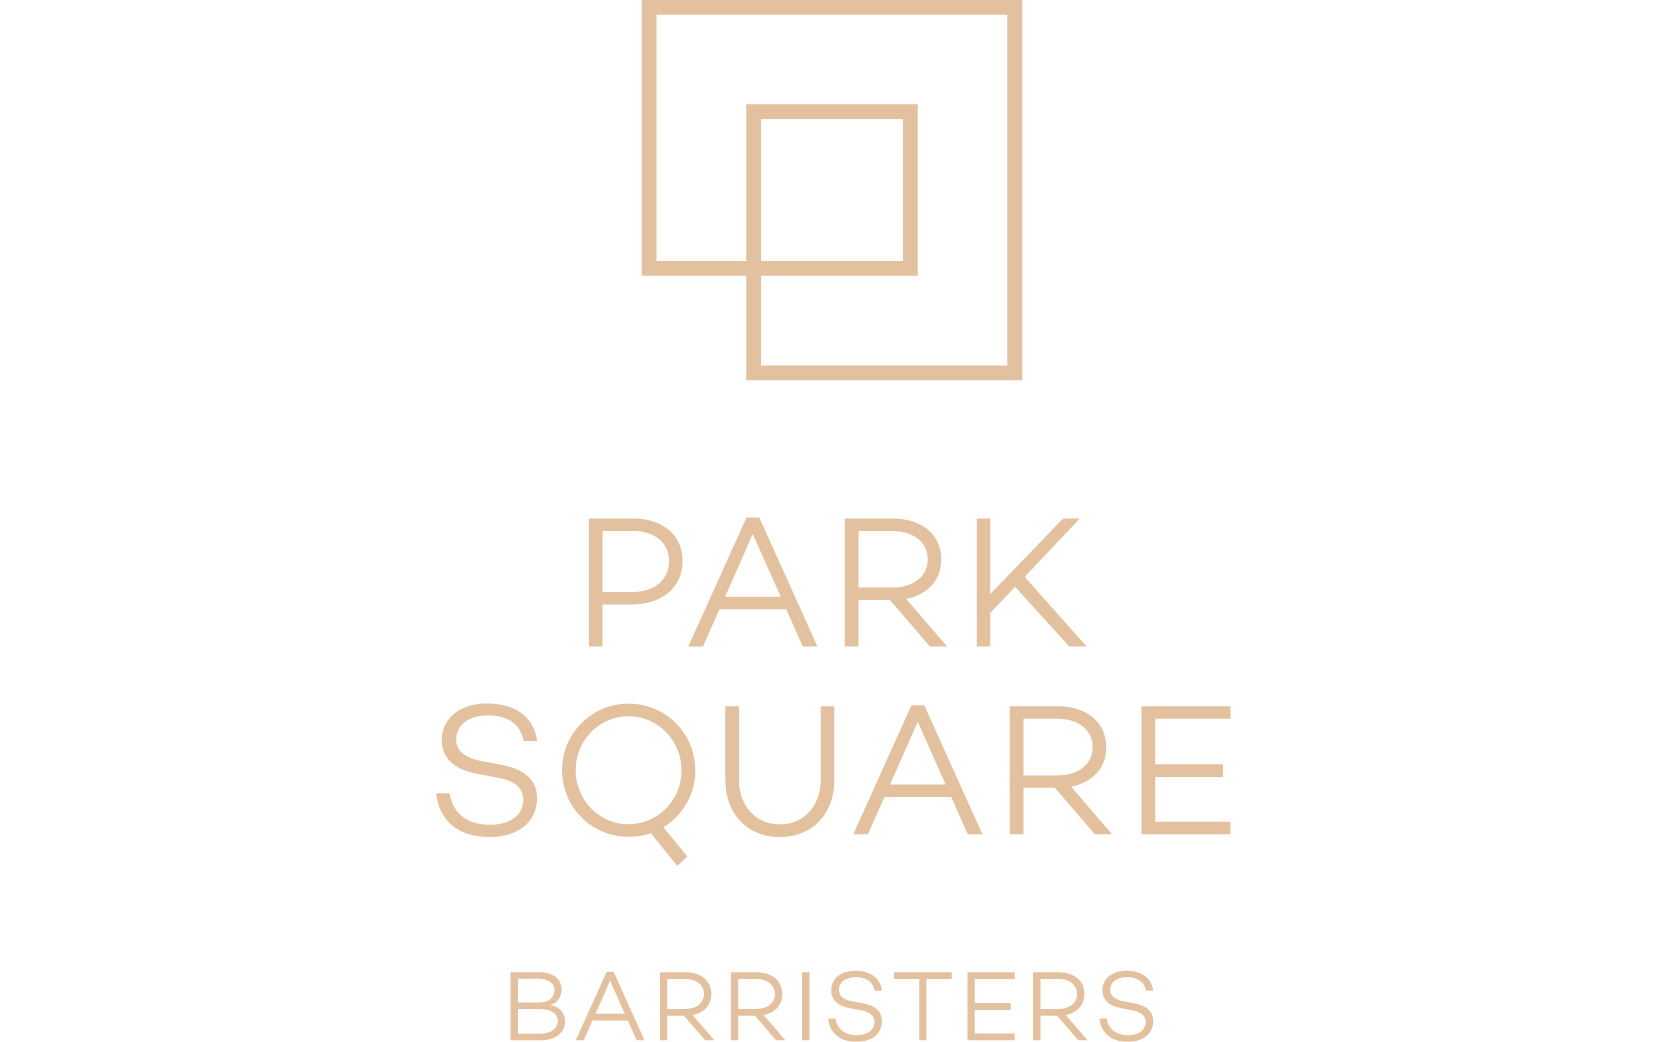 Park Square Barristers logo Yorkshire Legal Awards 2019